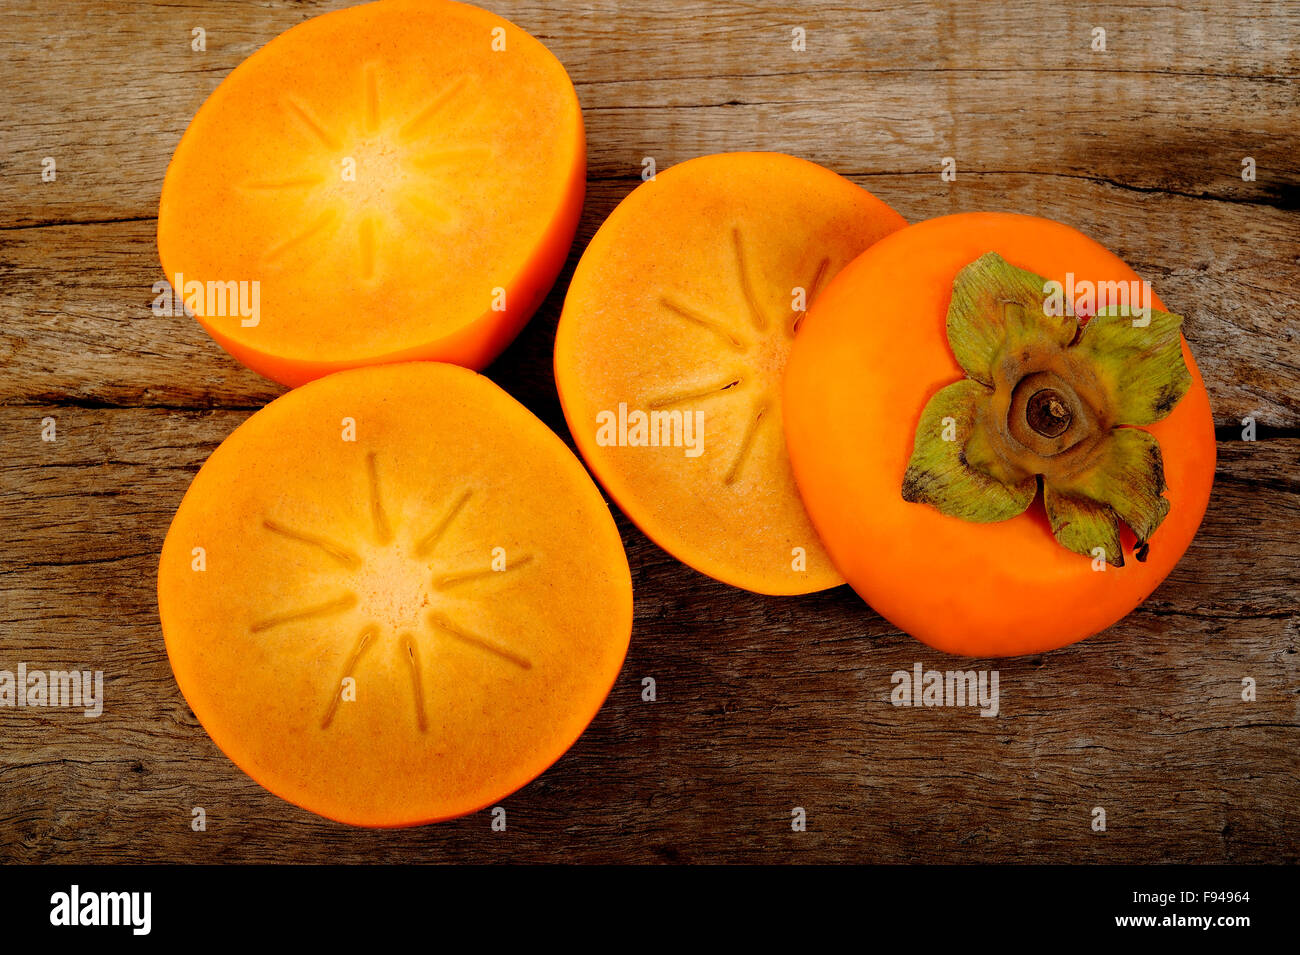 persimmon fruit on wooden background - Stock Image